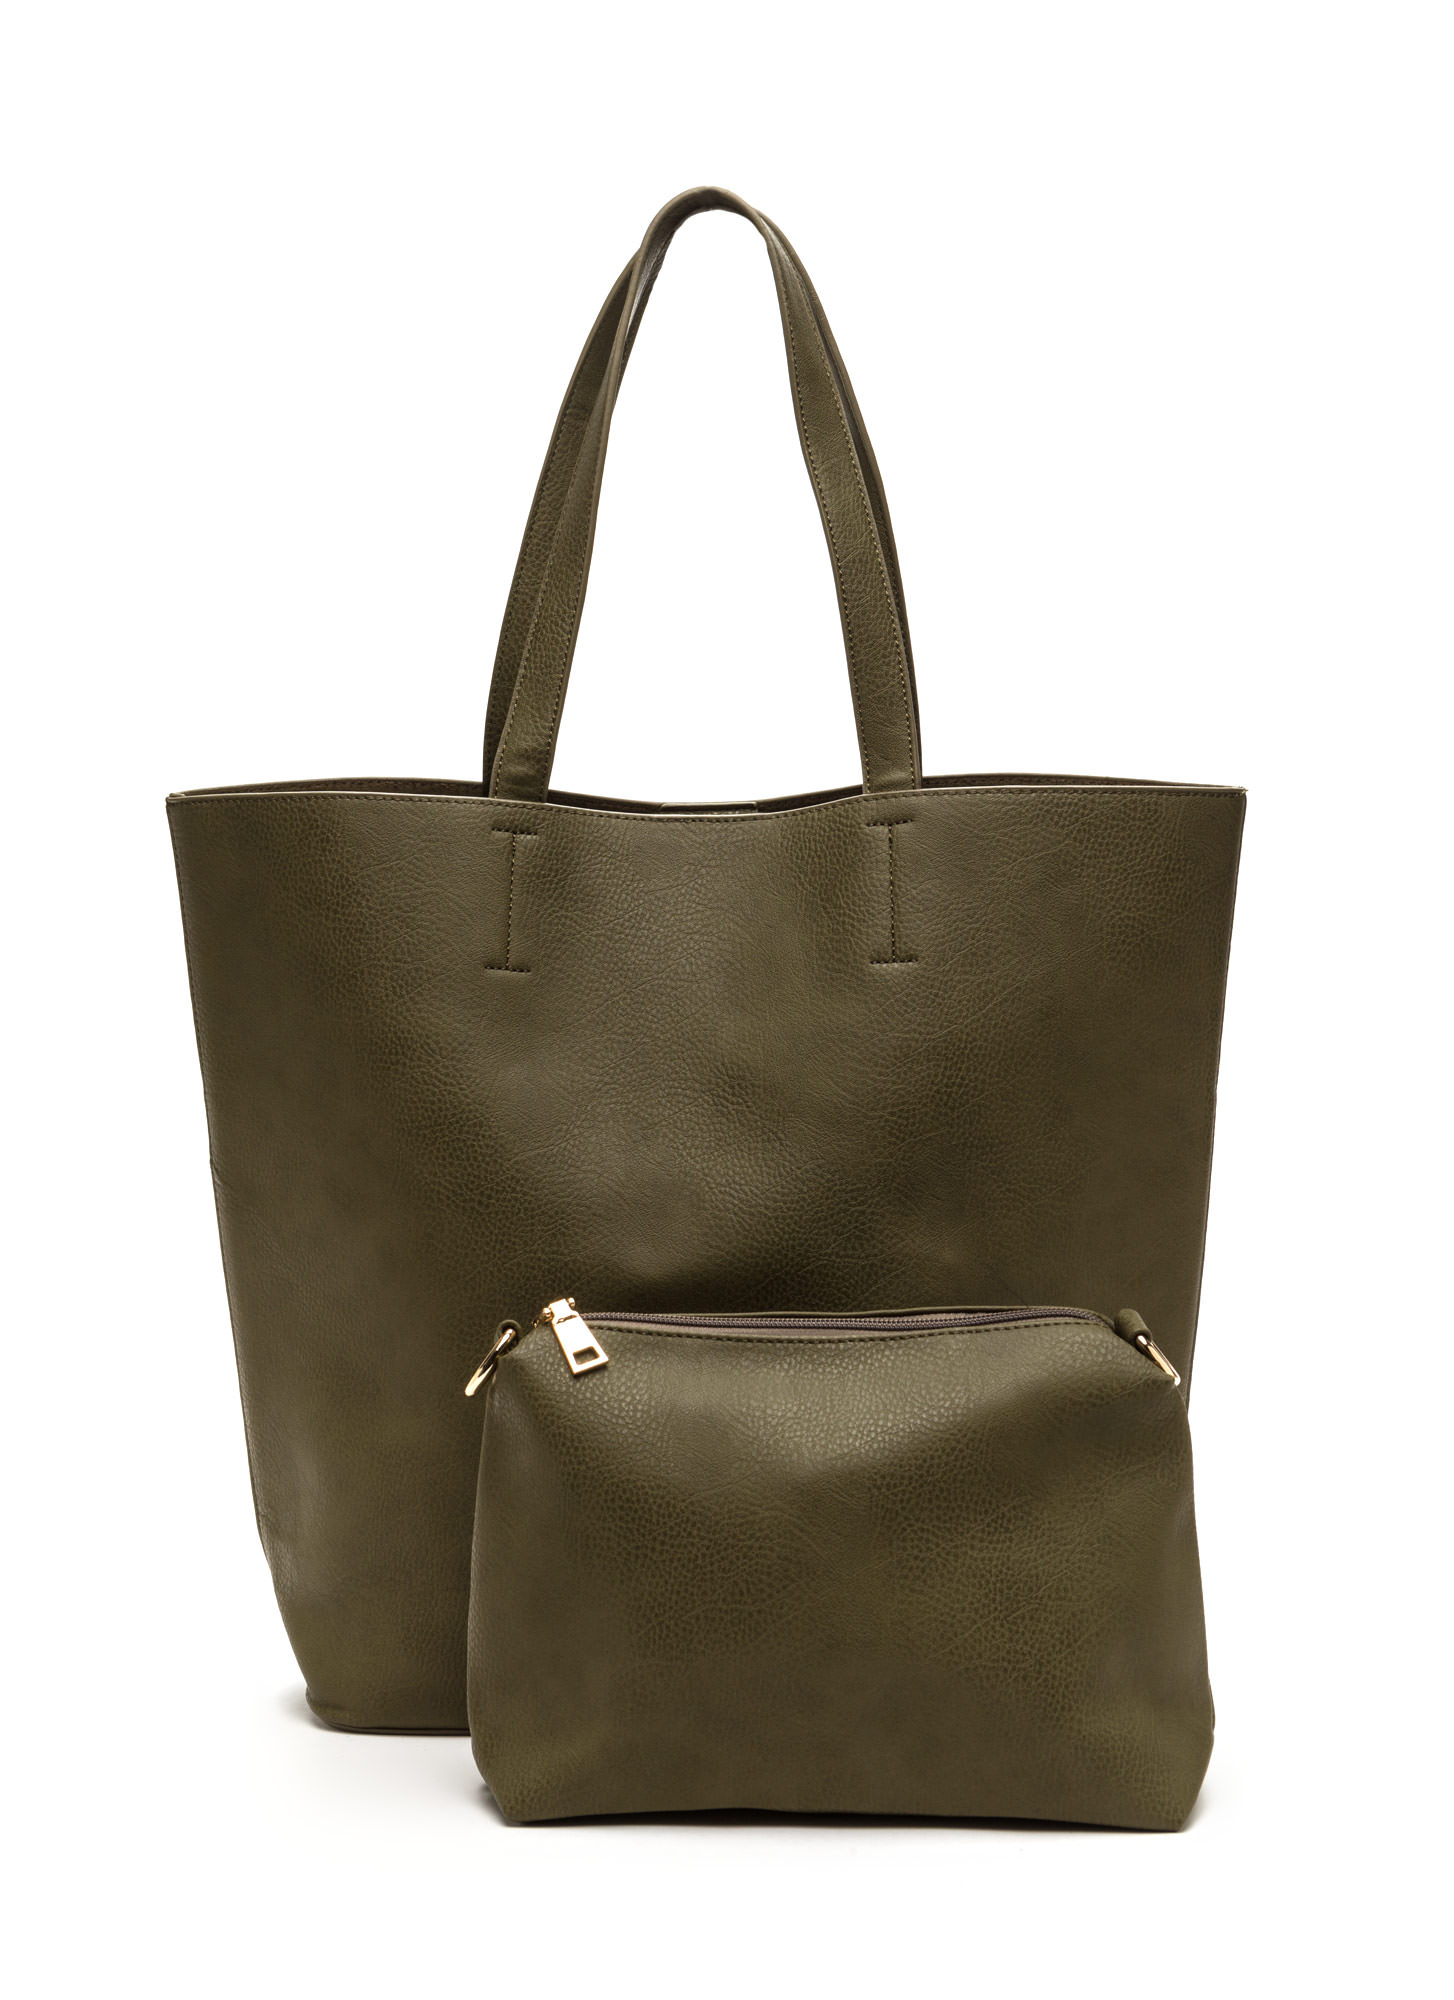 Commuter Chic Tote And Clutch Set OLIVE